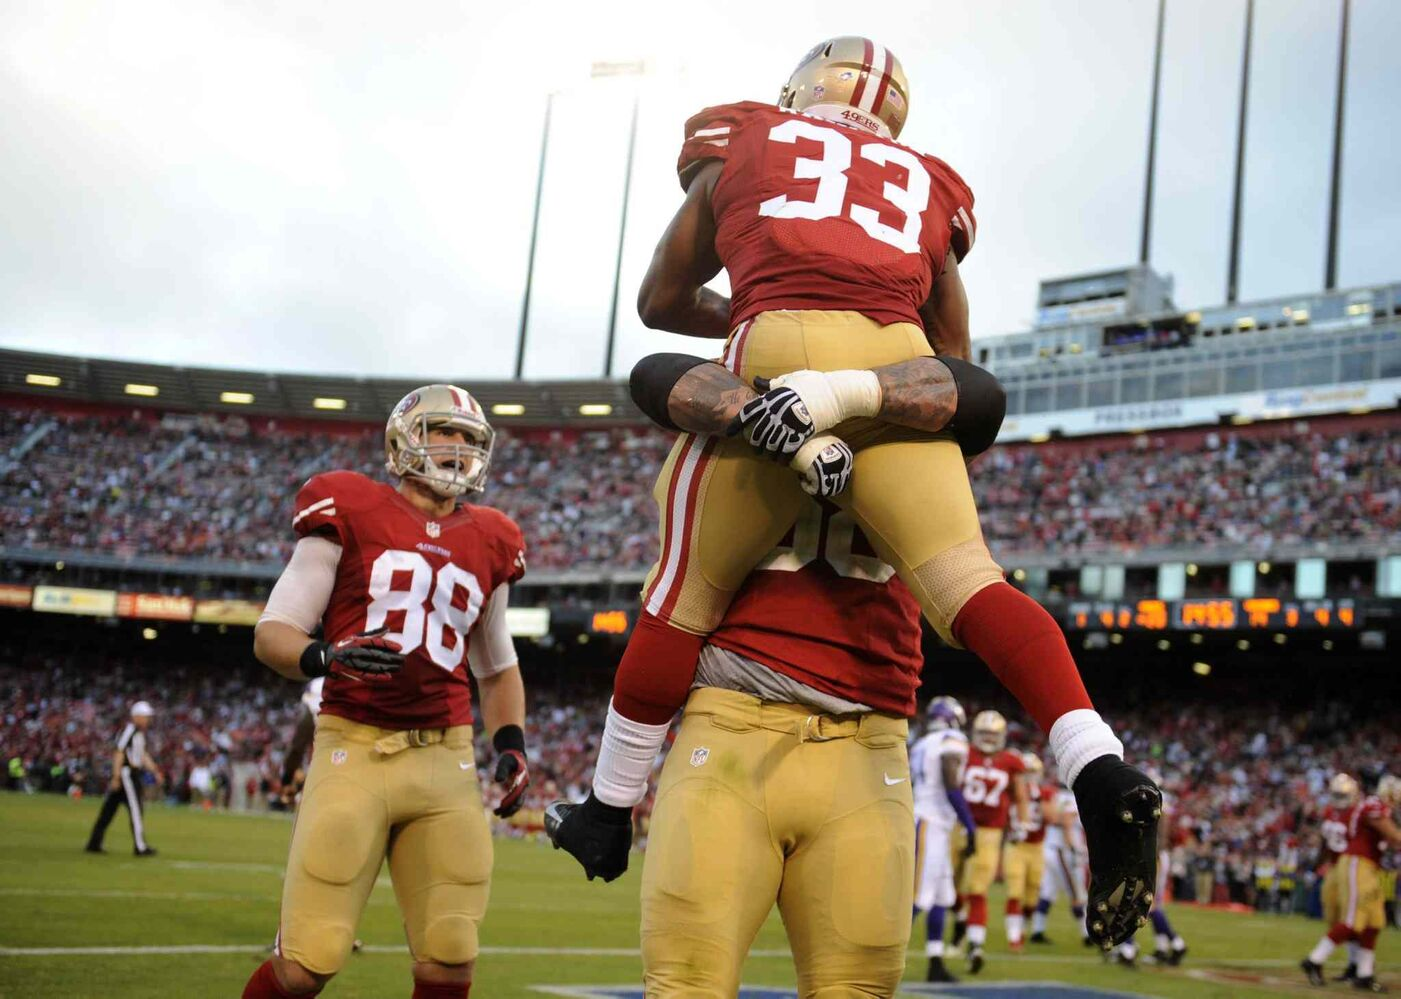 San Francisco 49ers' Jewel Hampton (33) celebrates his fourth-quarter touchdown against the Minnesota Vikings during a preseason game at Candlestick Park in August 2013.